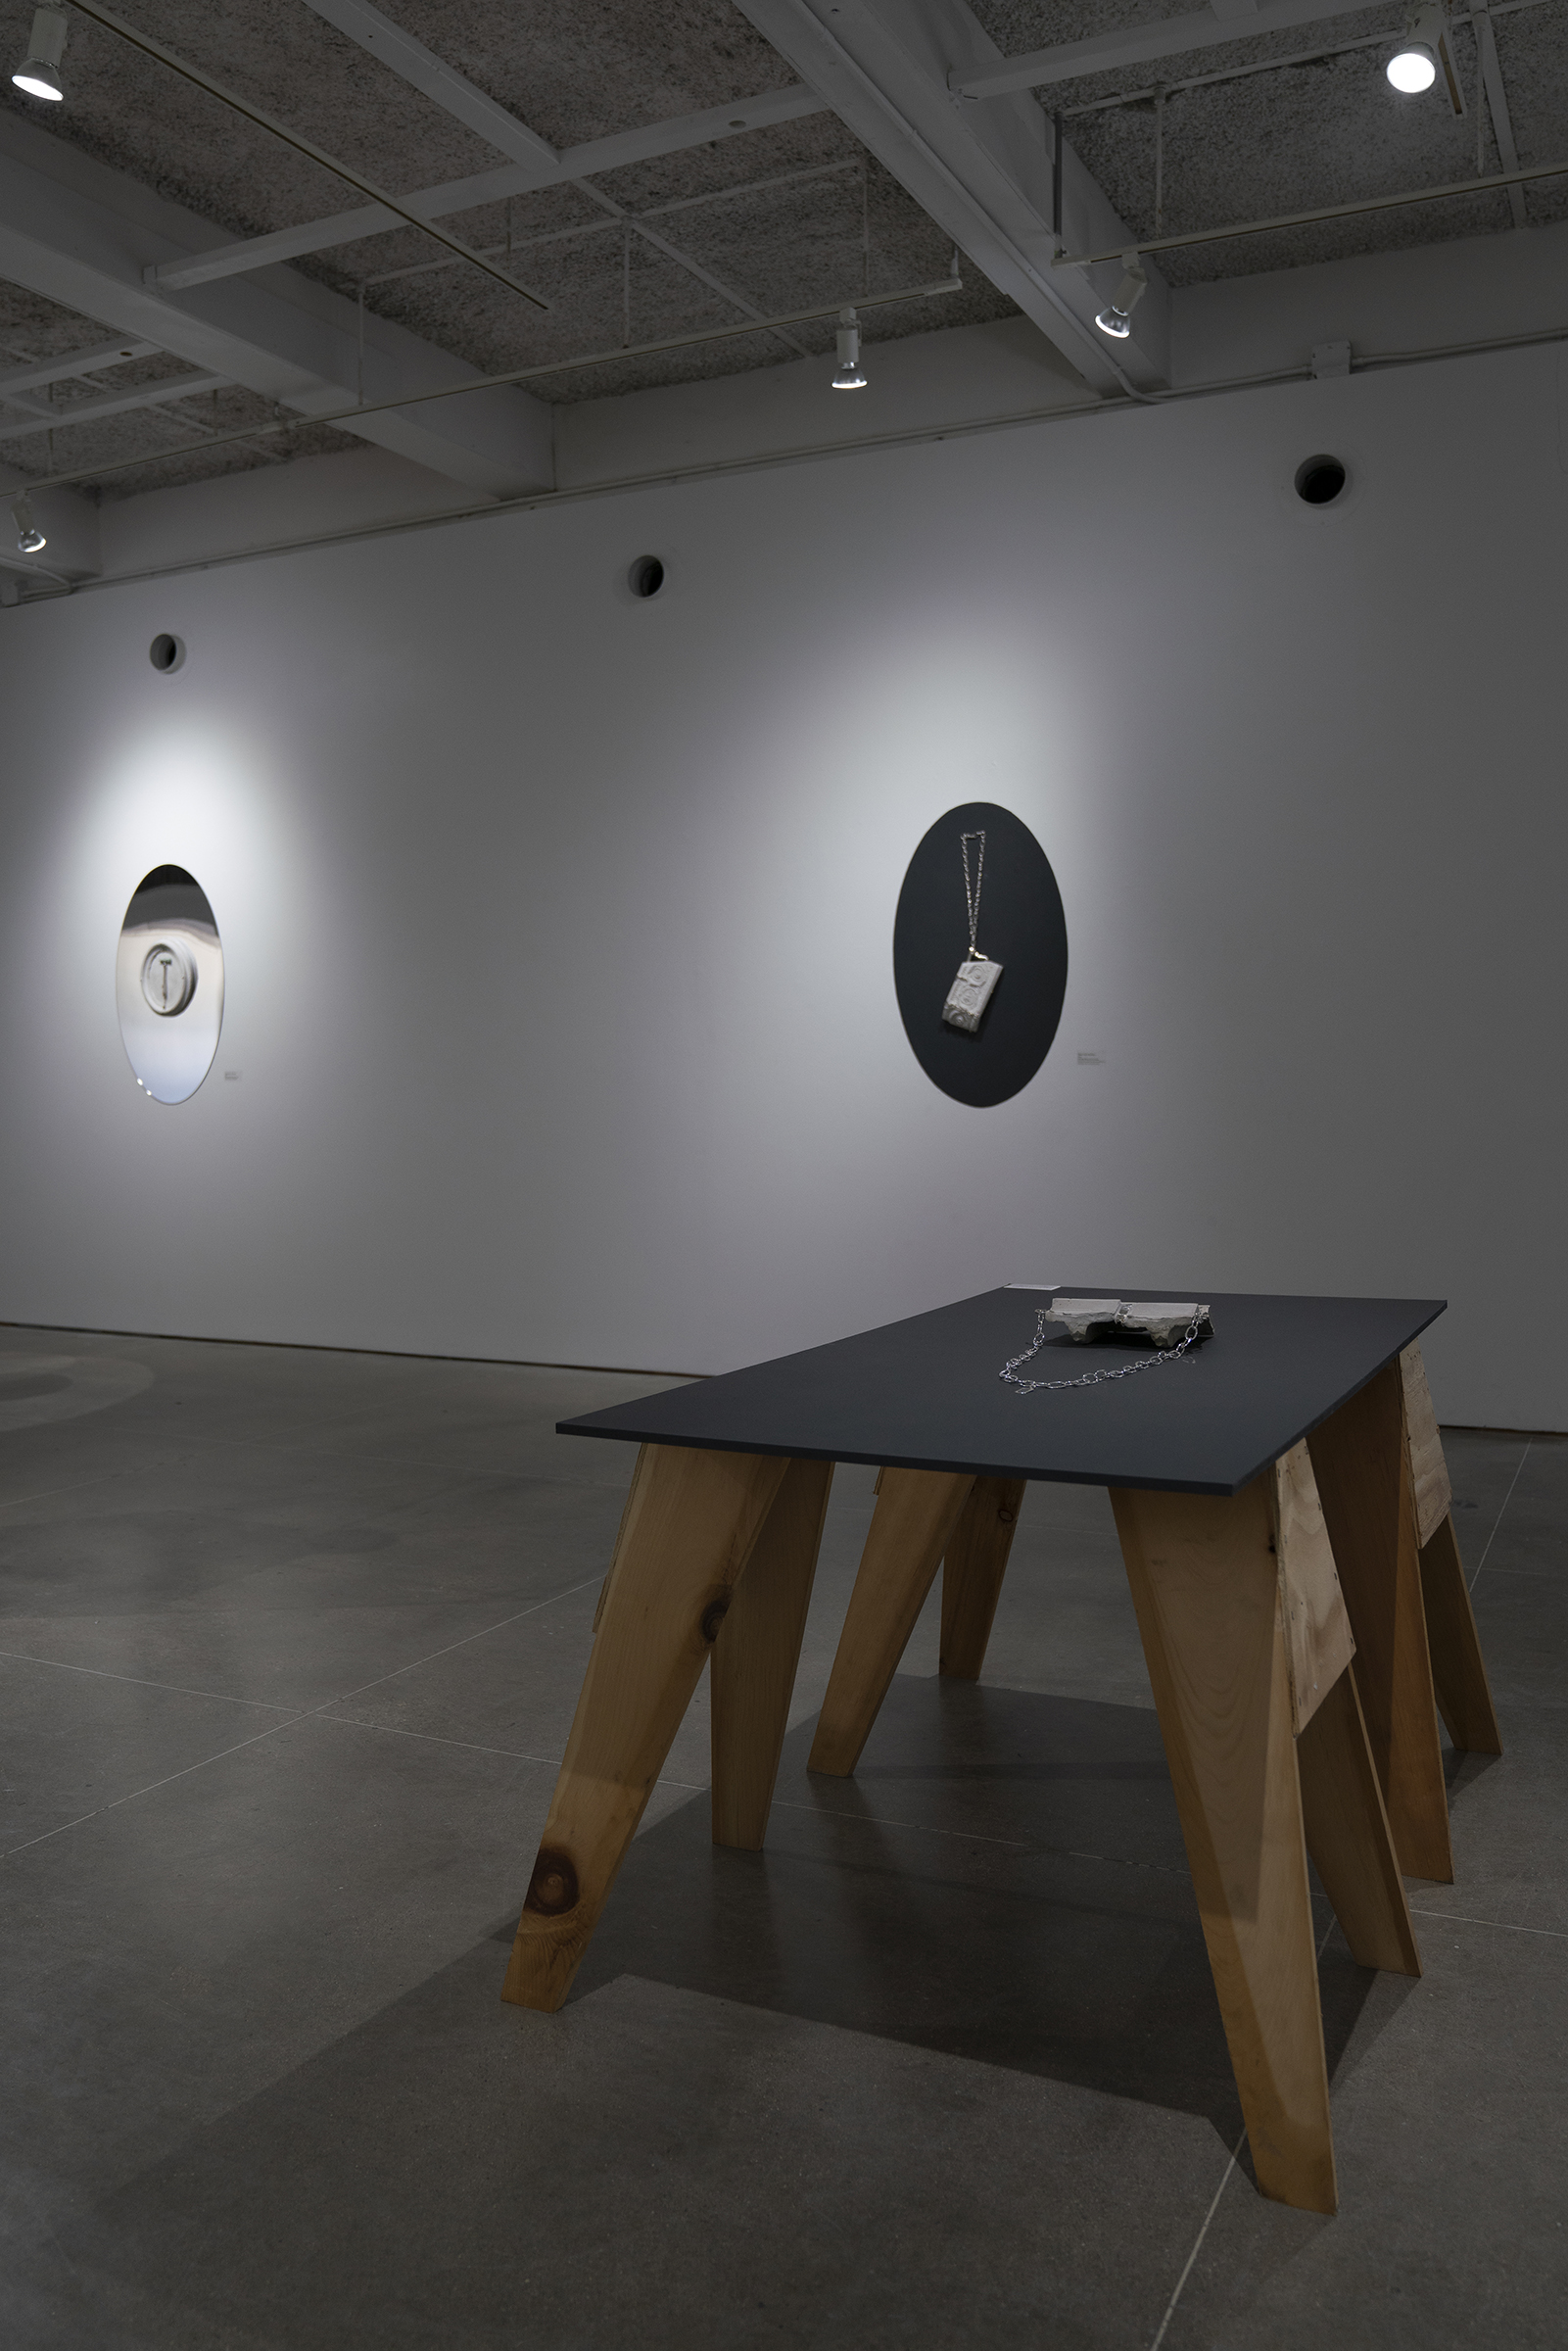 Installation view of 自 𐩑 愈 Self-healing Culture Master of Fine Arts Exhibition by Ziqin (Marsh) Min at Gallery 7, Humanities Building, University of Wisconsin-Madison.